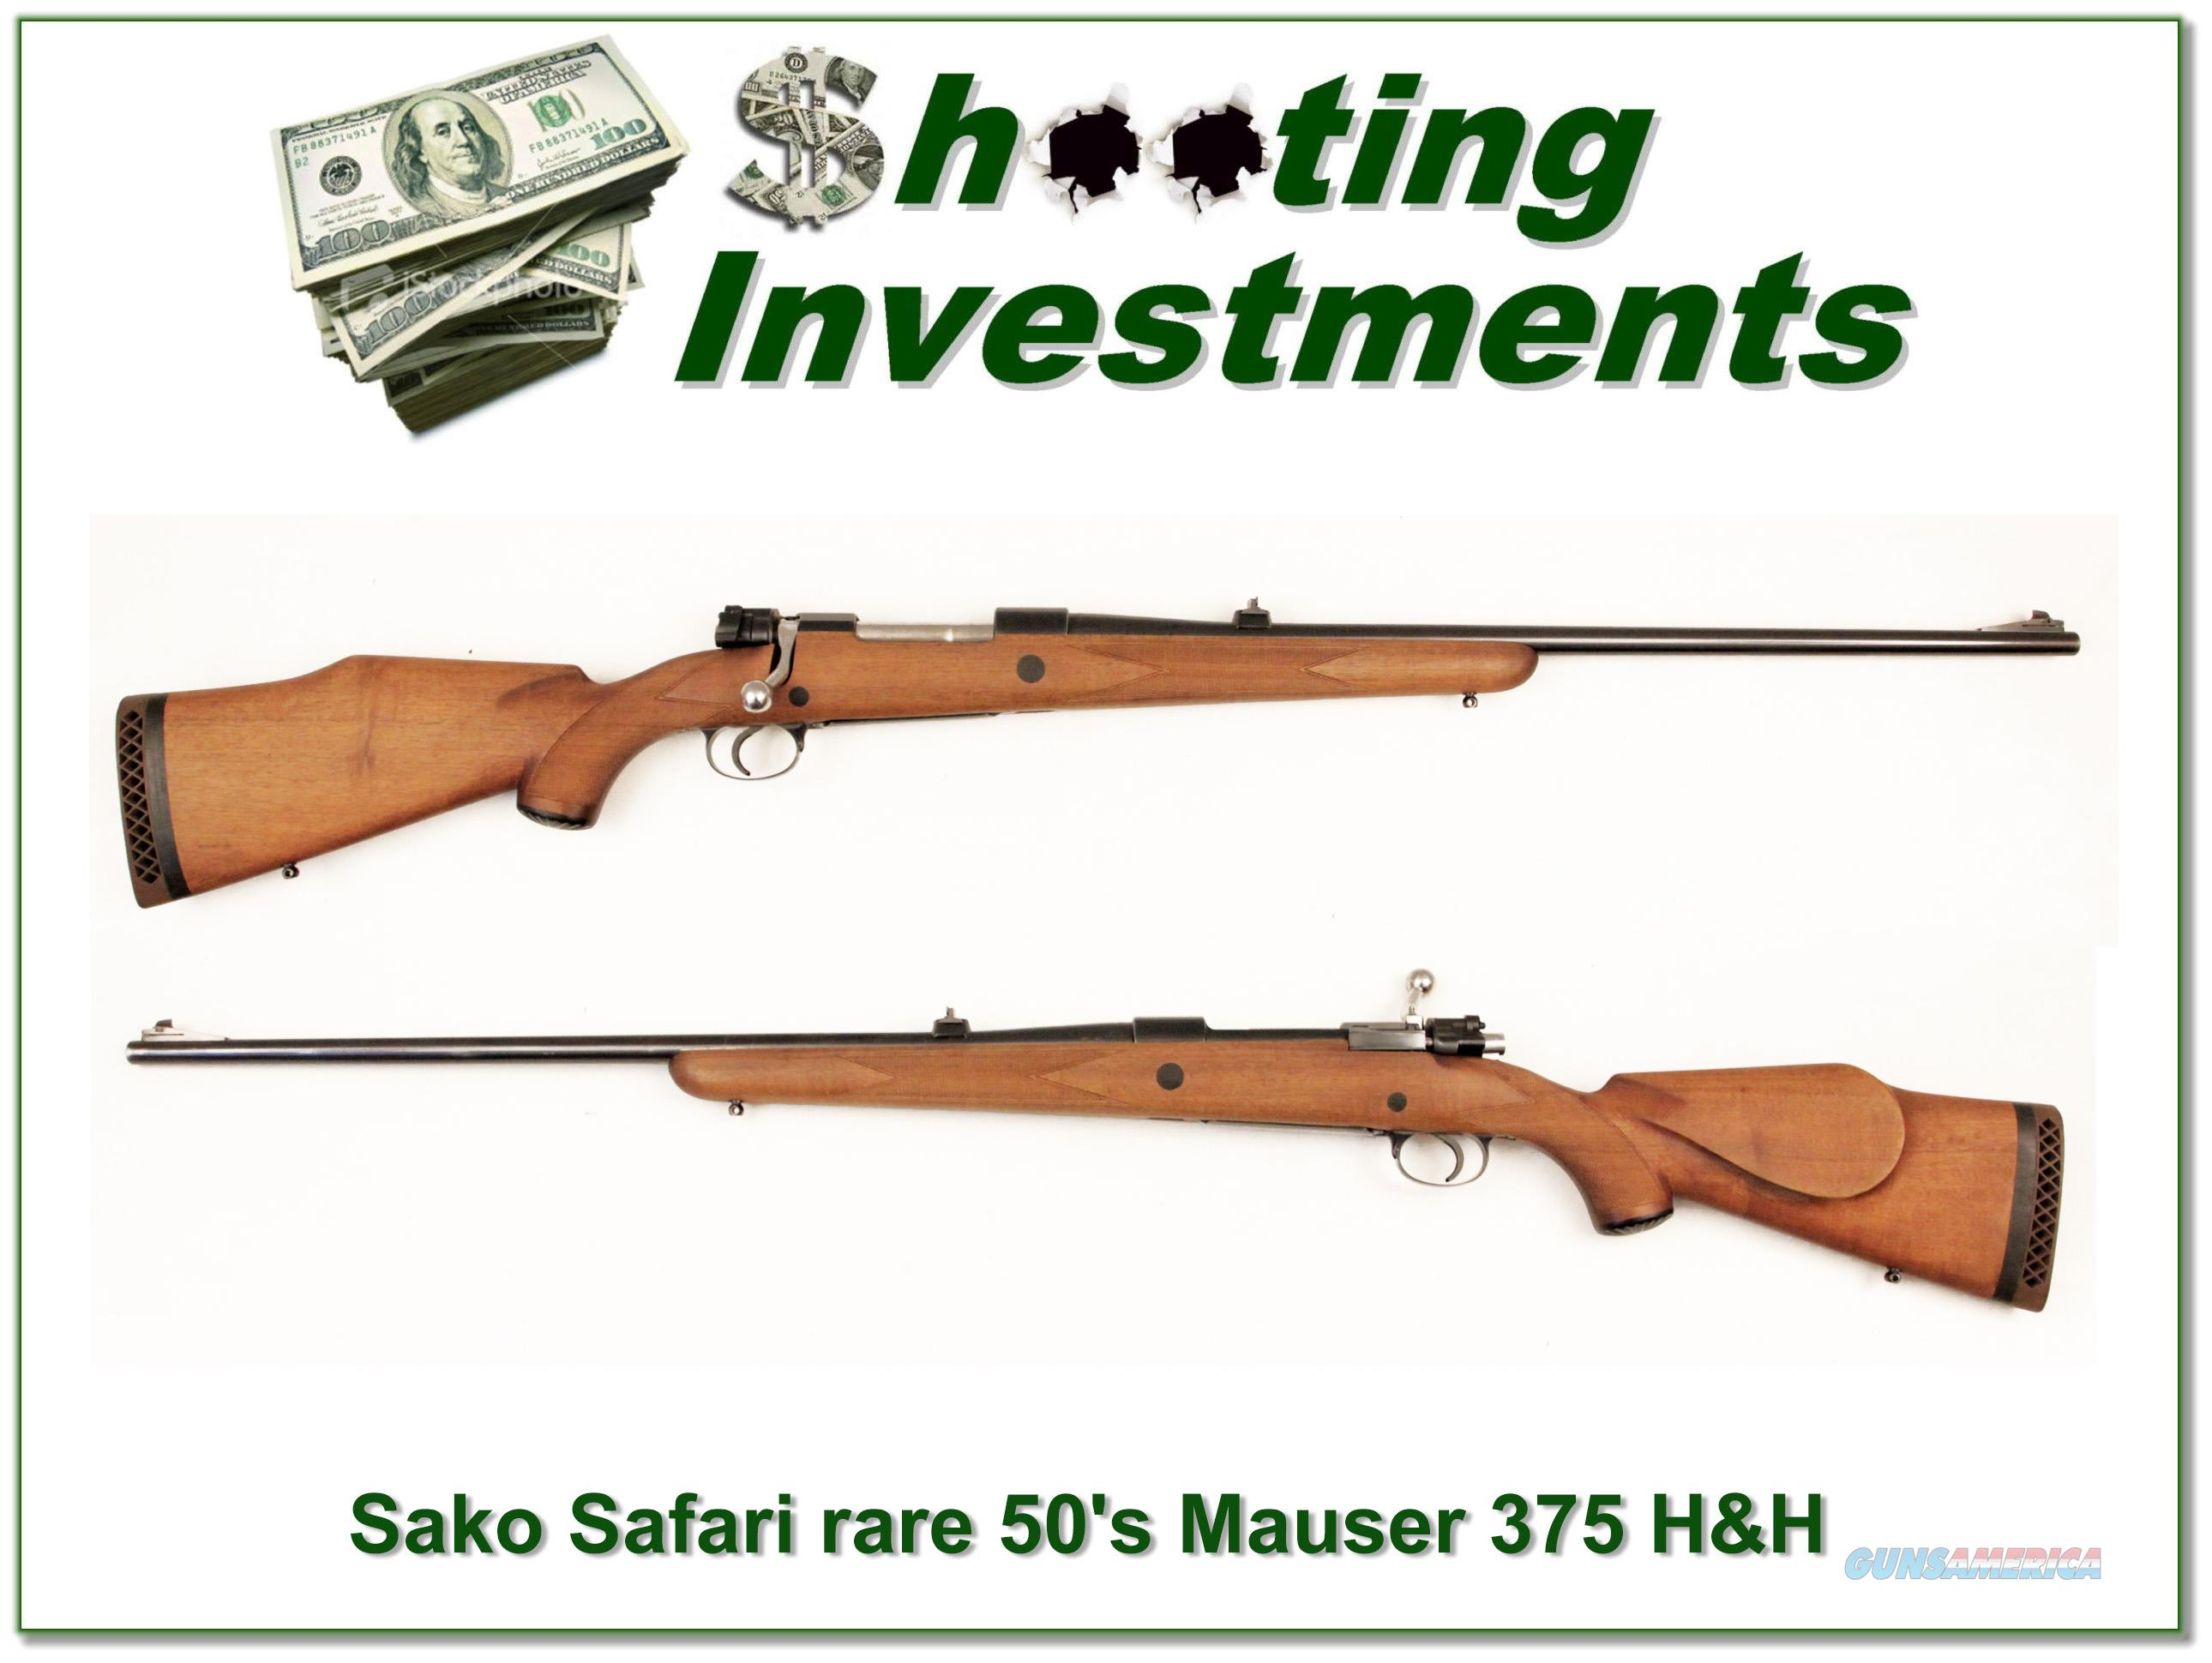 Sako Safari Mauser in 375 H&H Bofers Steel, Exc Cond!  Guns > Rifles > Sako Rifles > Other Bolt Action